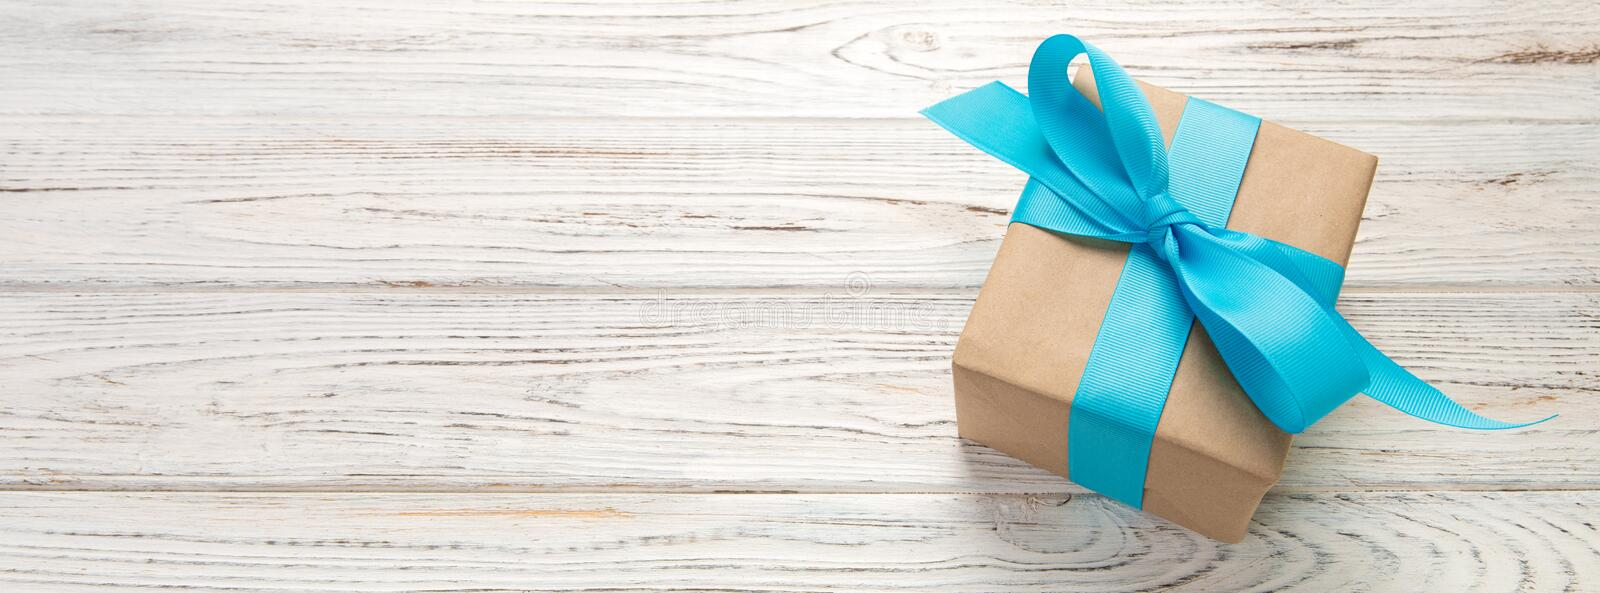 Beautiful gift box with a blue bow on the white wooden table. Top view banner with copy space for you design stock photography